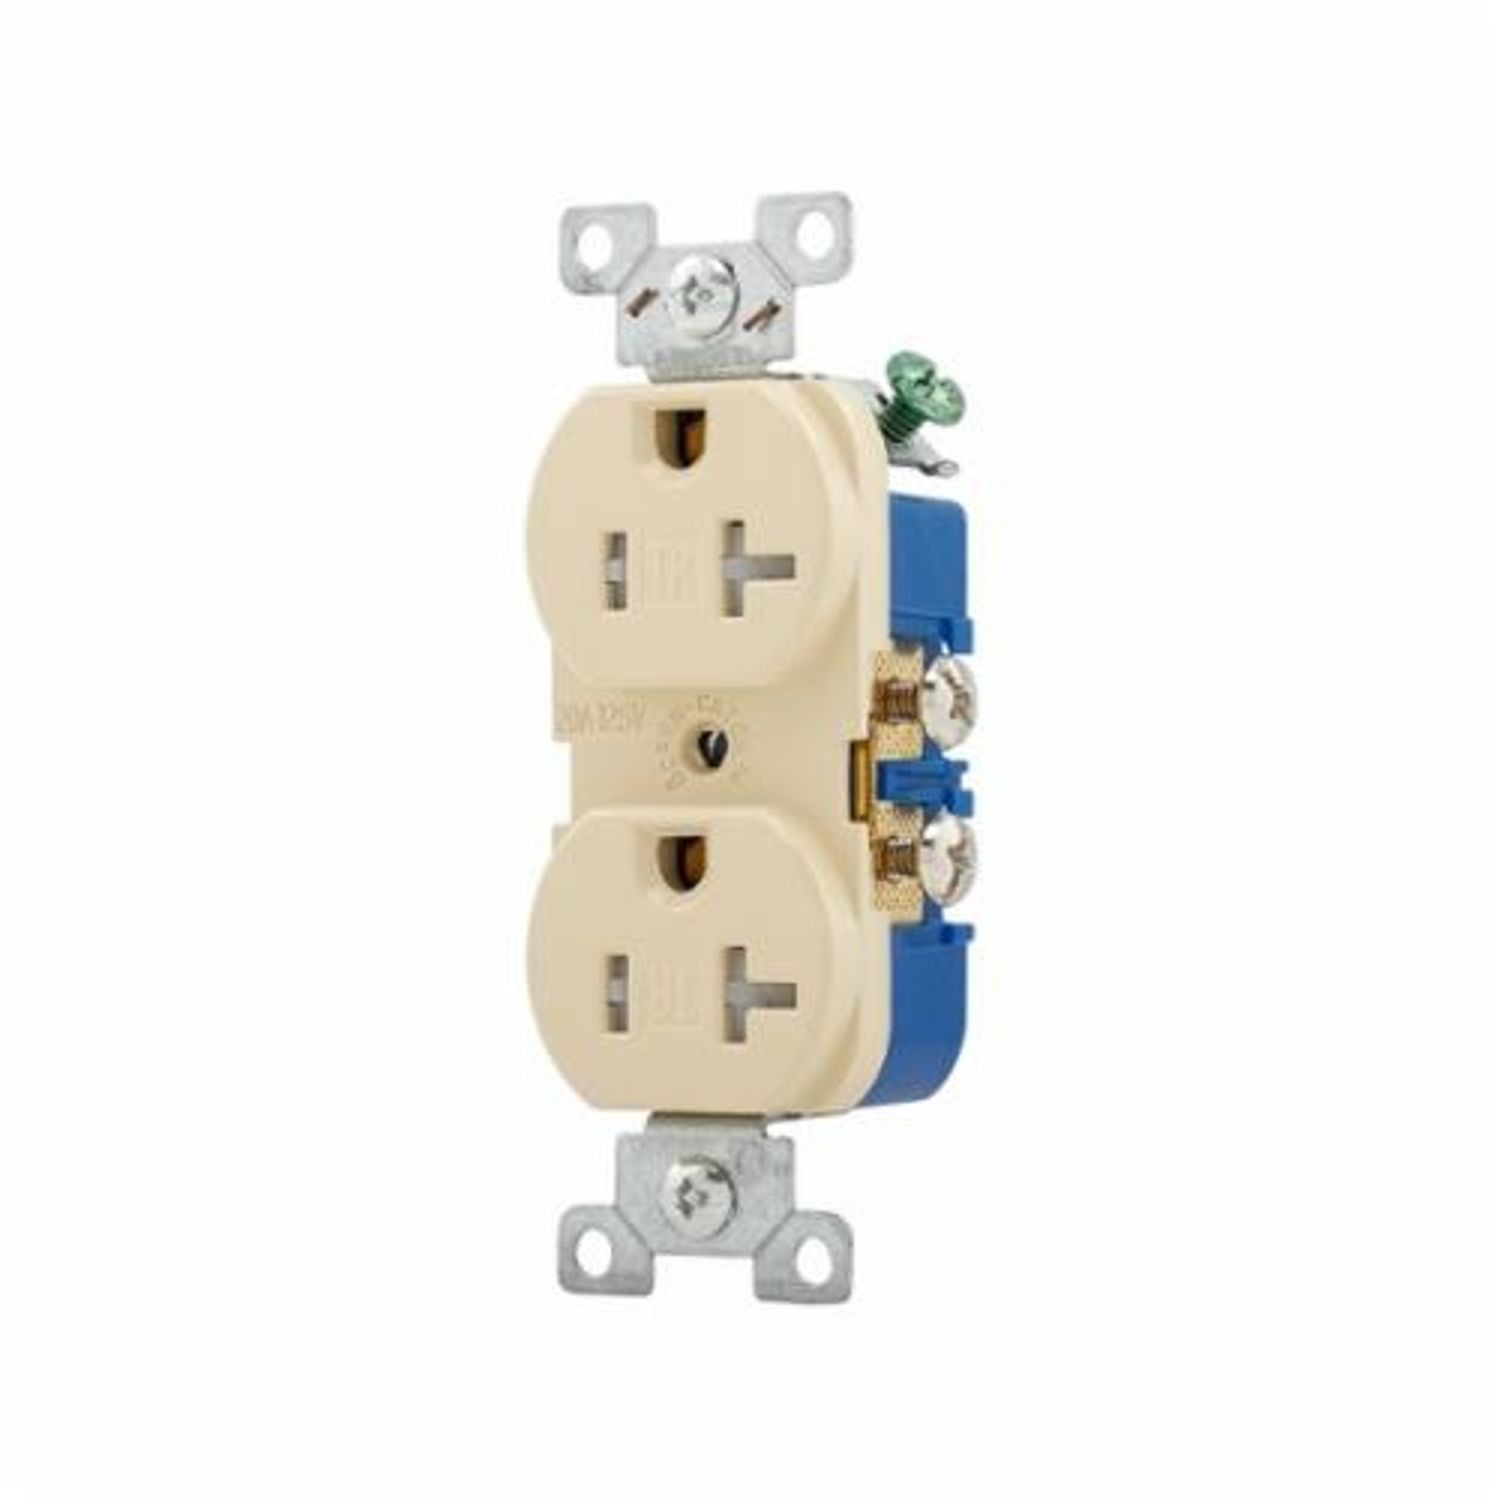 hight resolution of cooper wiring tamper resistant duplex receptacle 125 vac 20 a 2 poles 3 wires ivory state electric